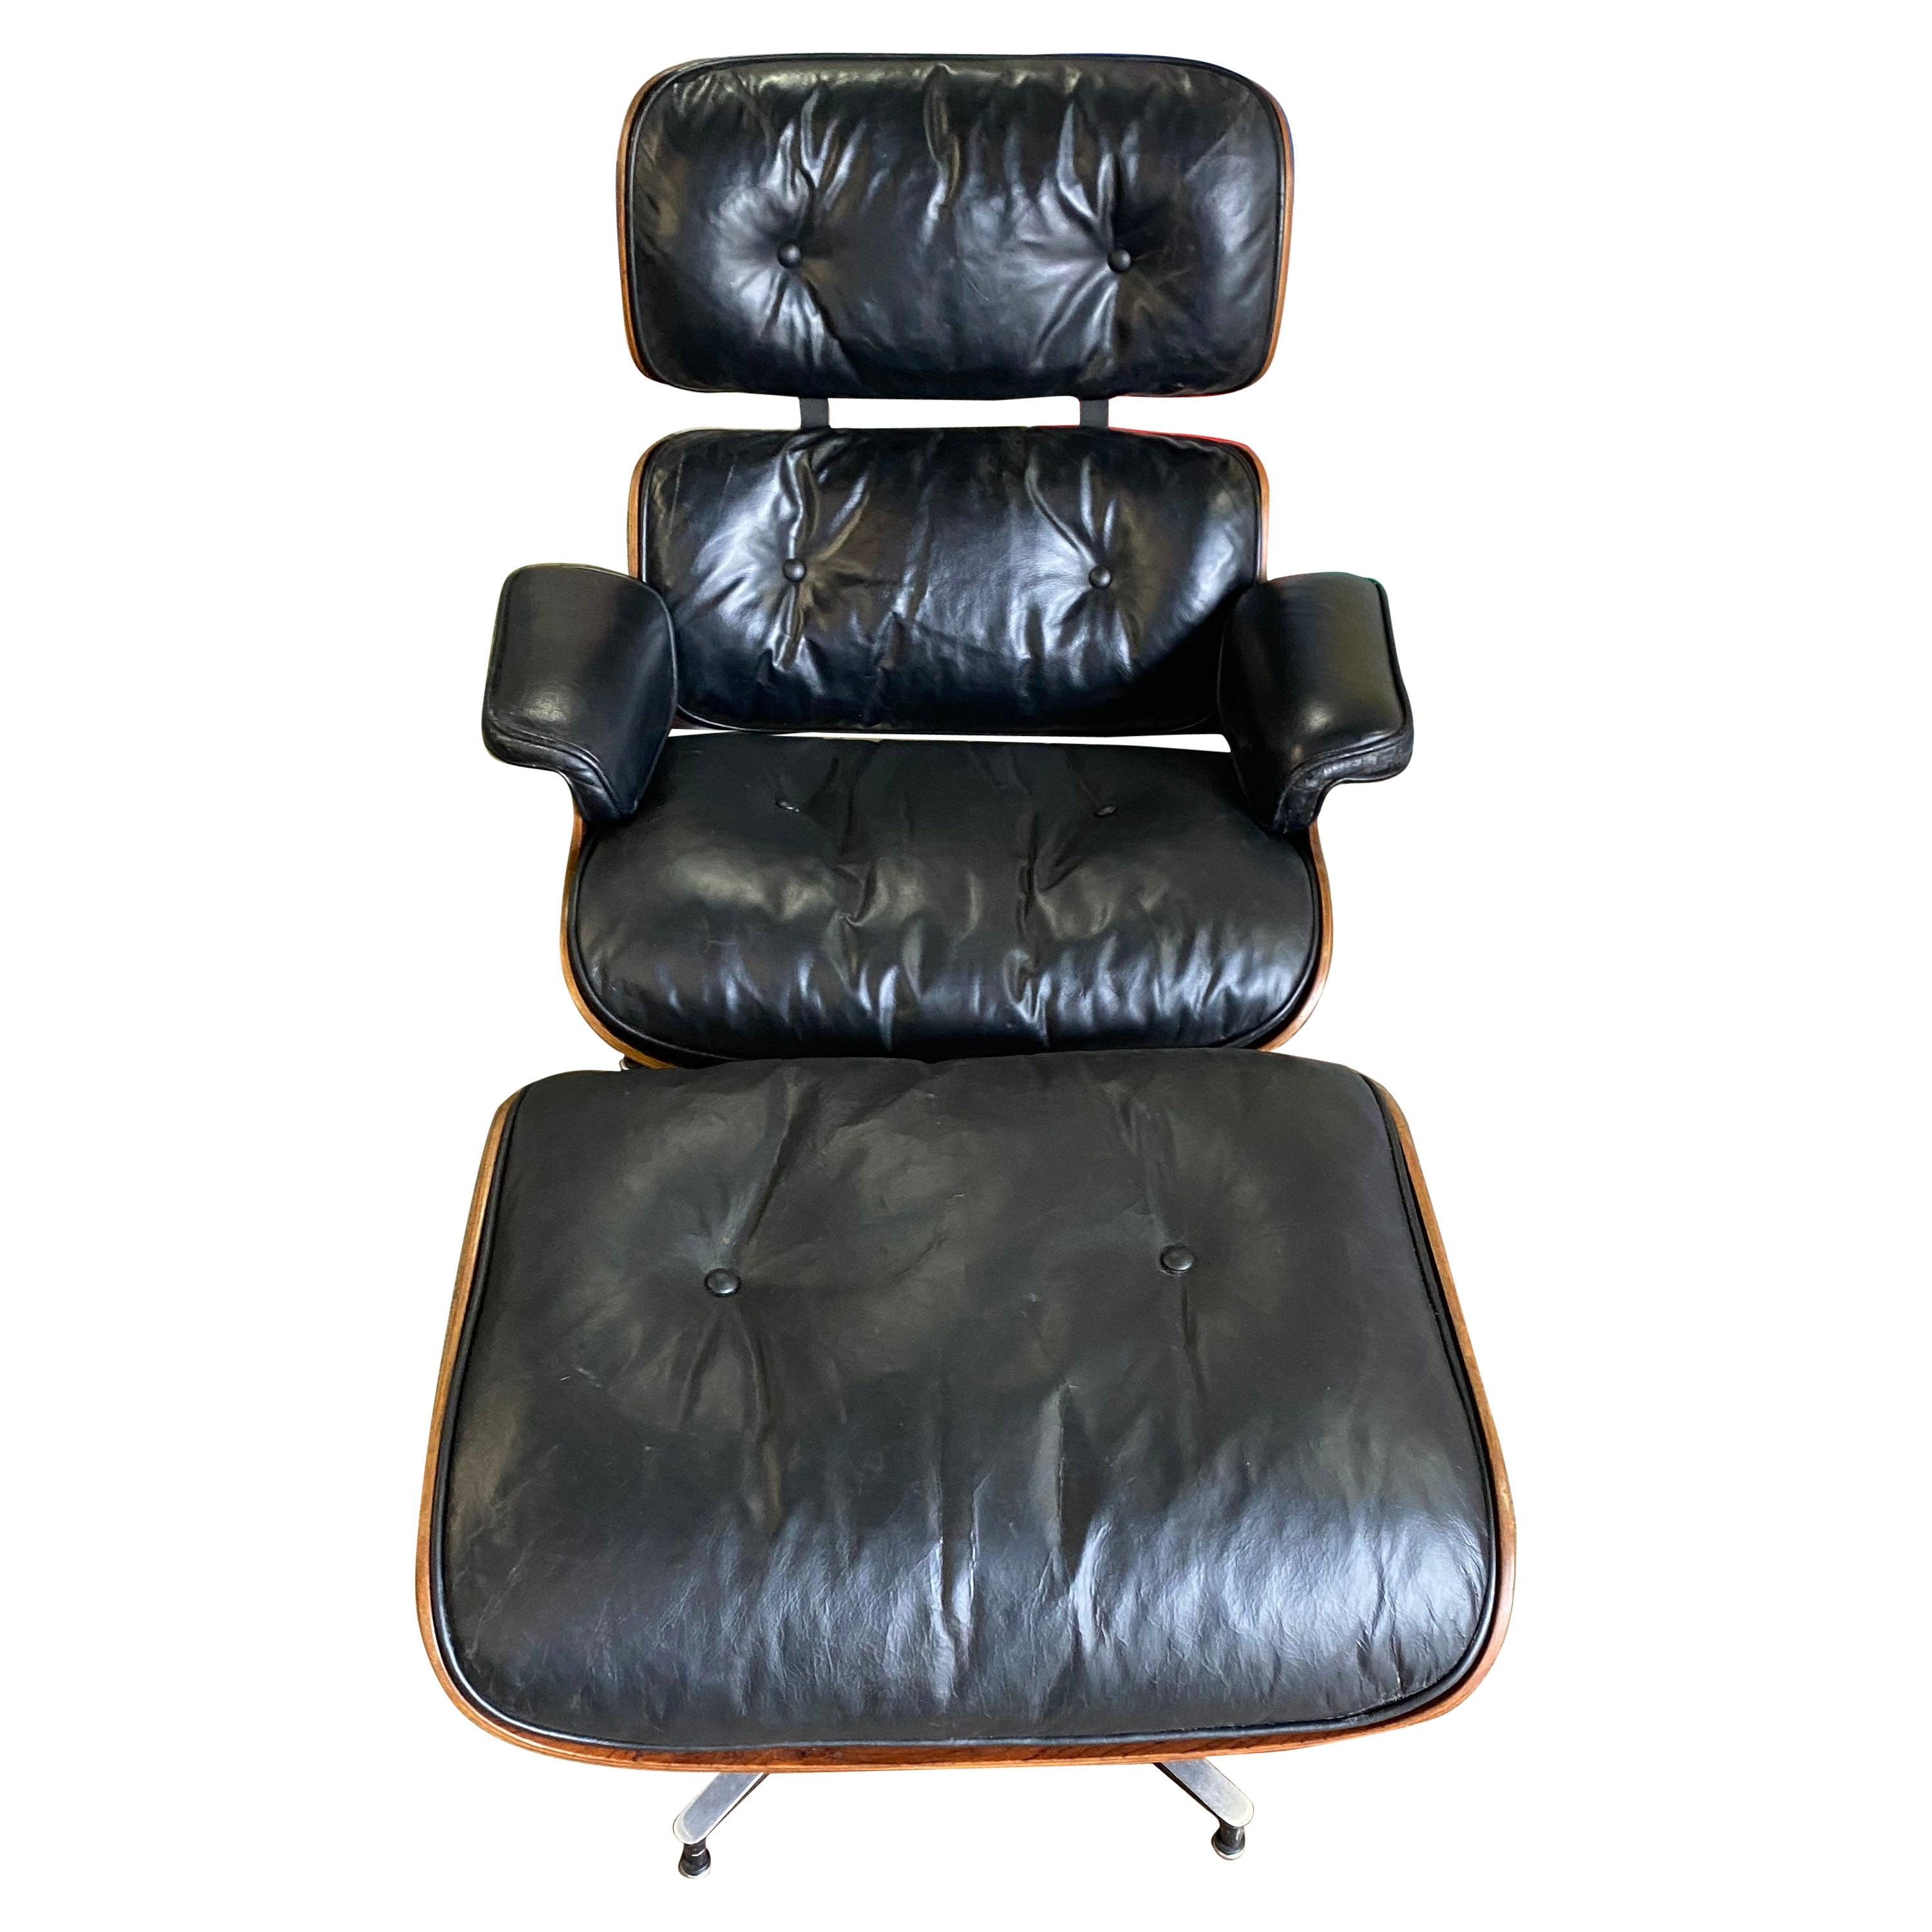 1960s Herman Miller Eames Lounge Chair and Ottoman